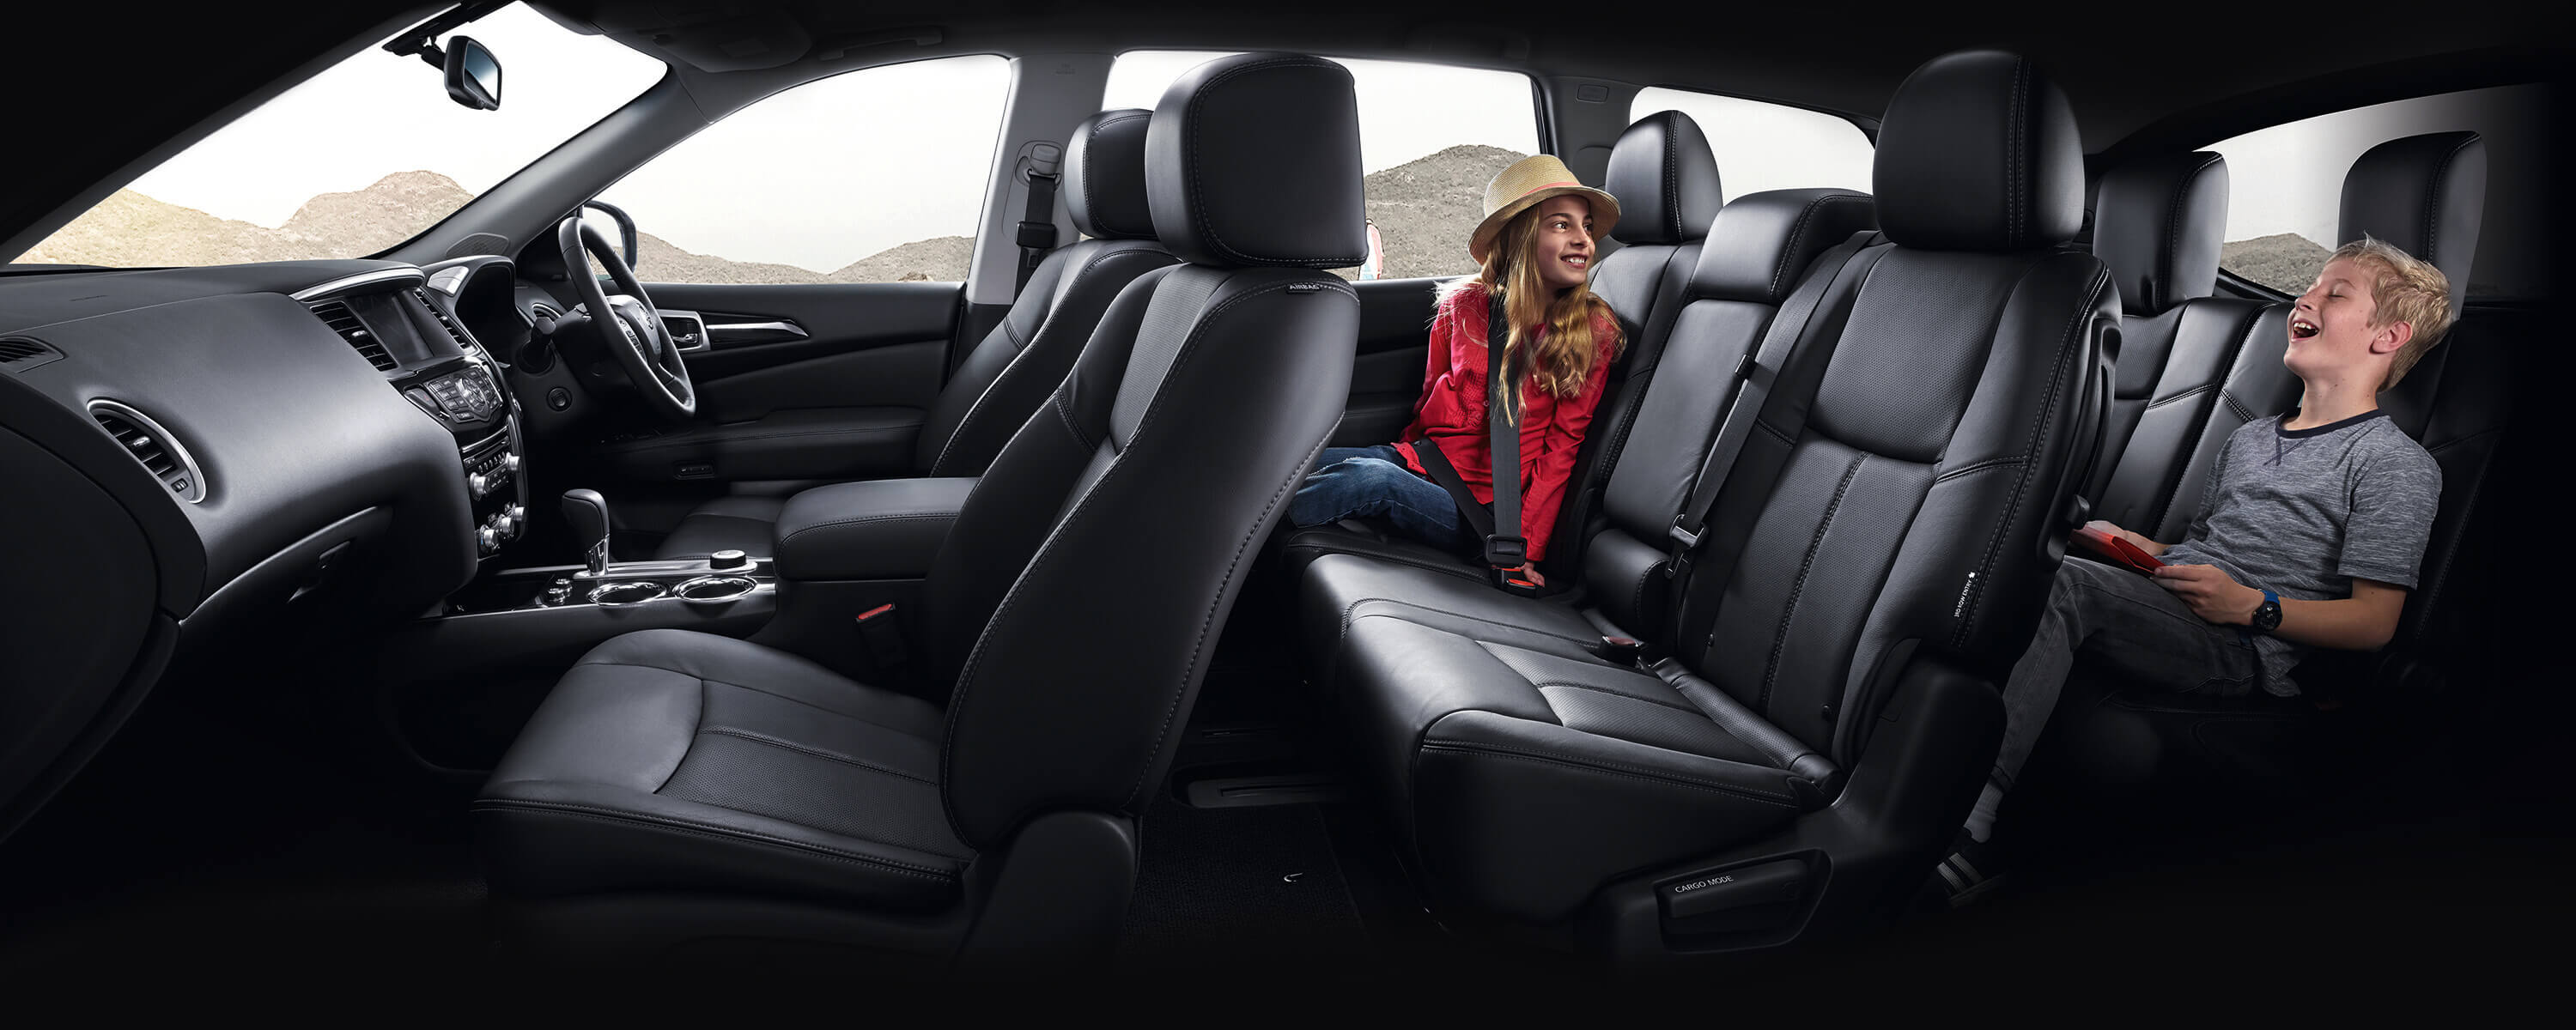 Children playing on the seats of Nissan Pathfinder